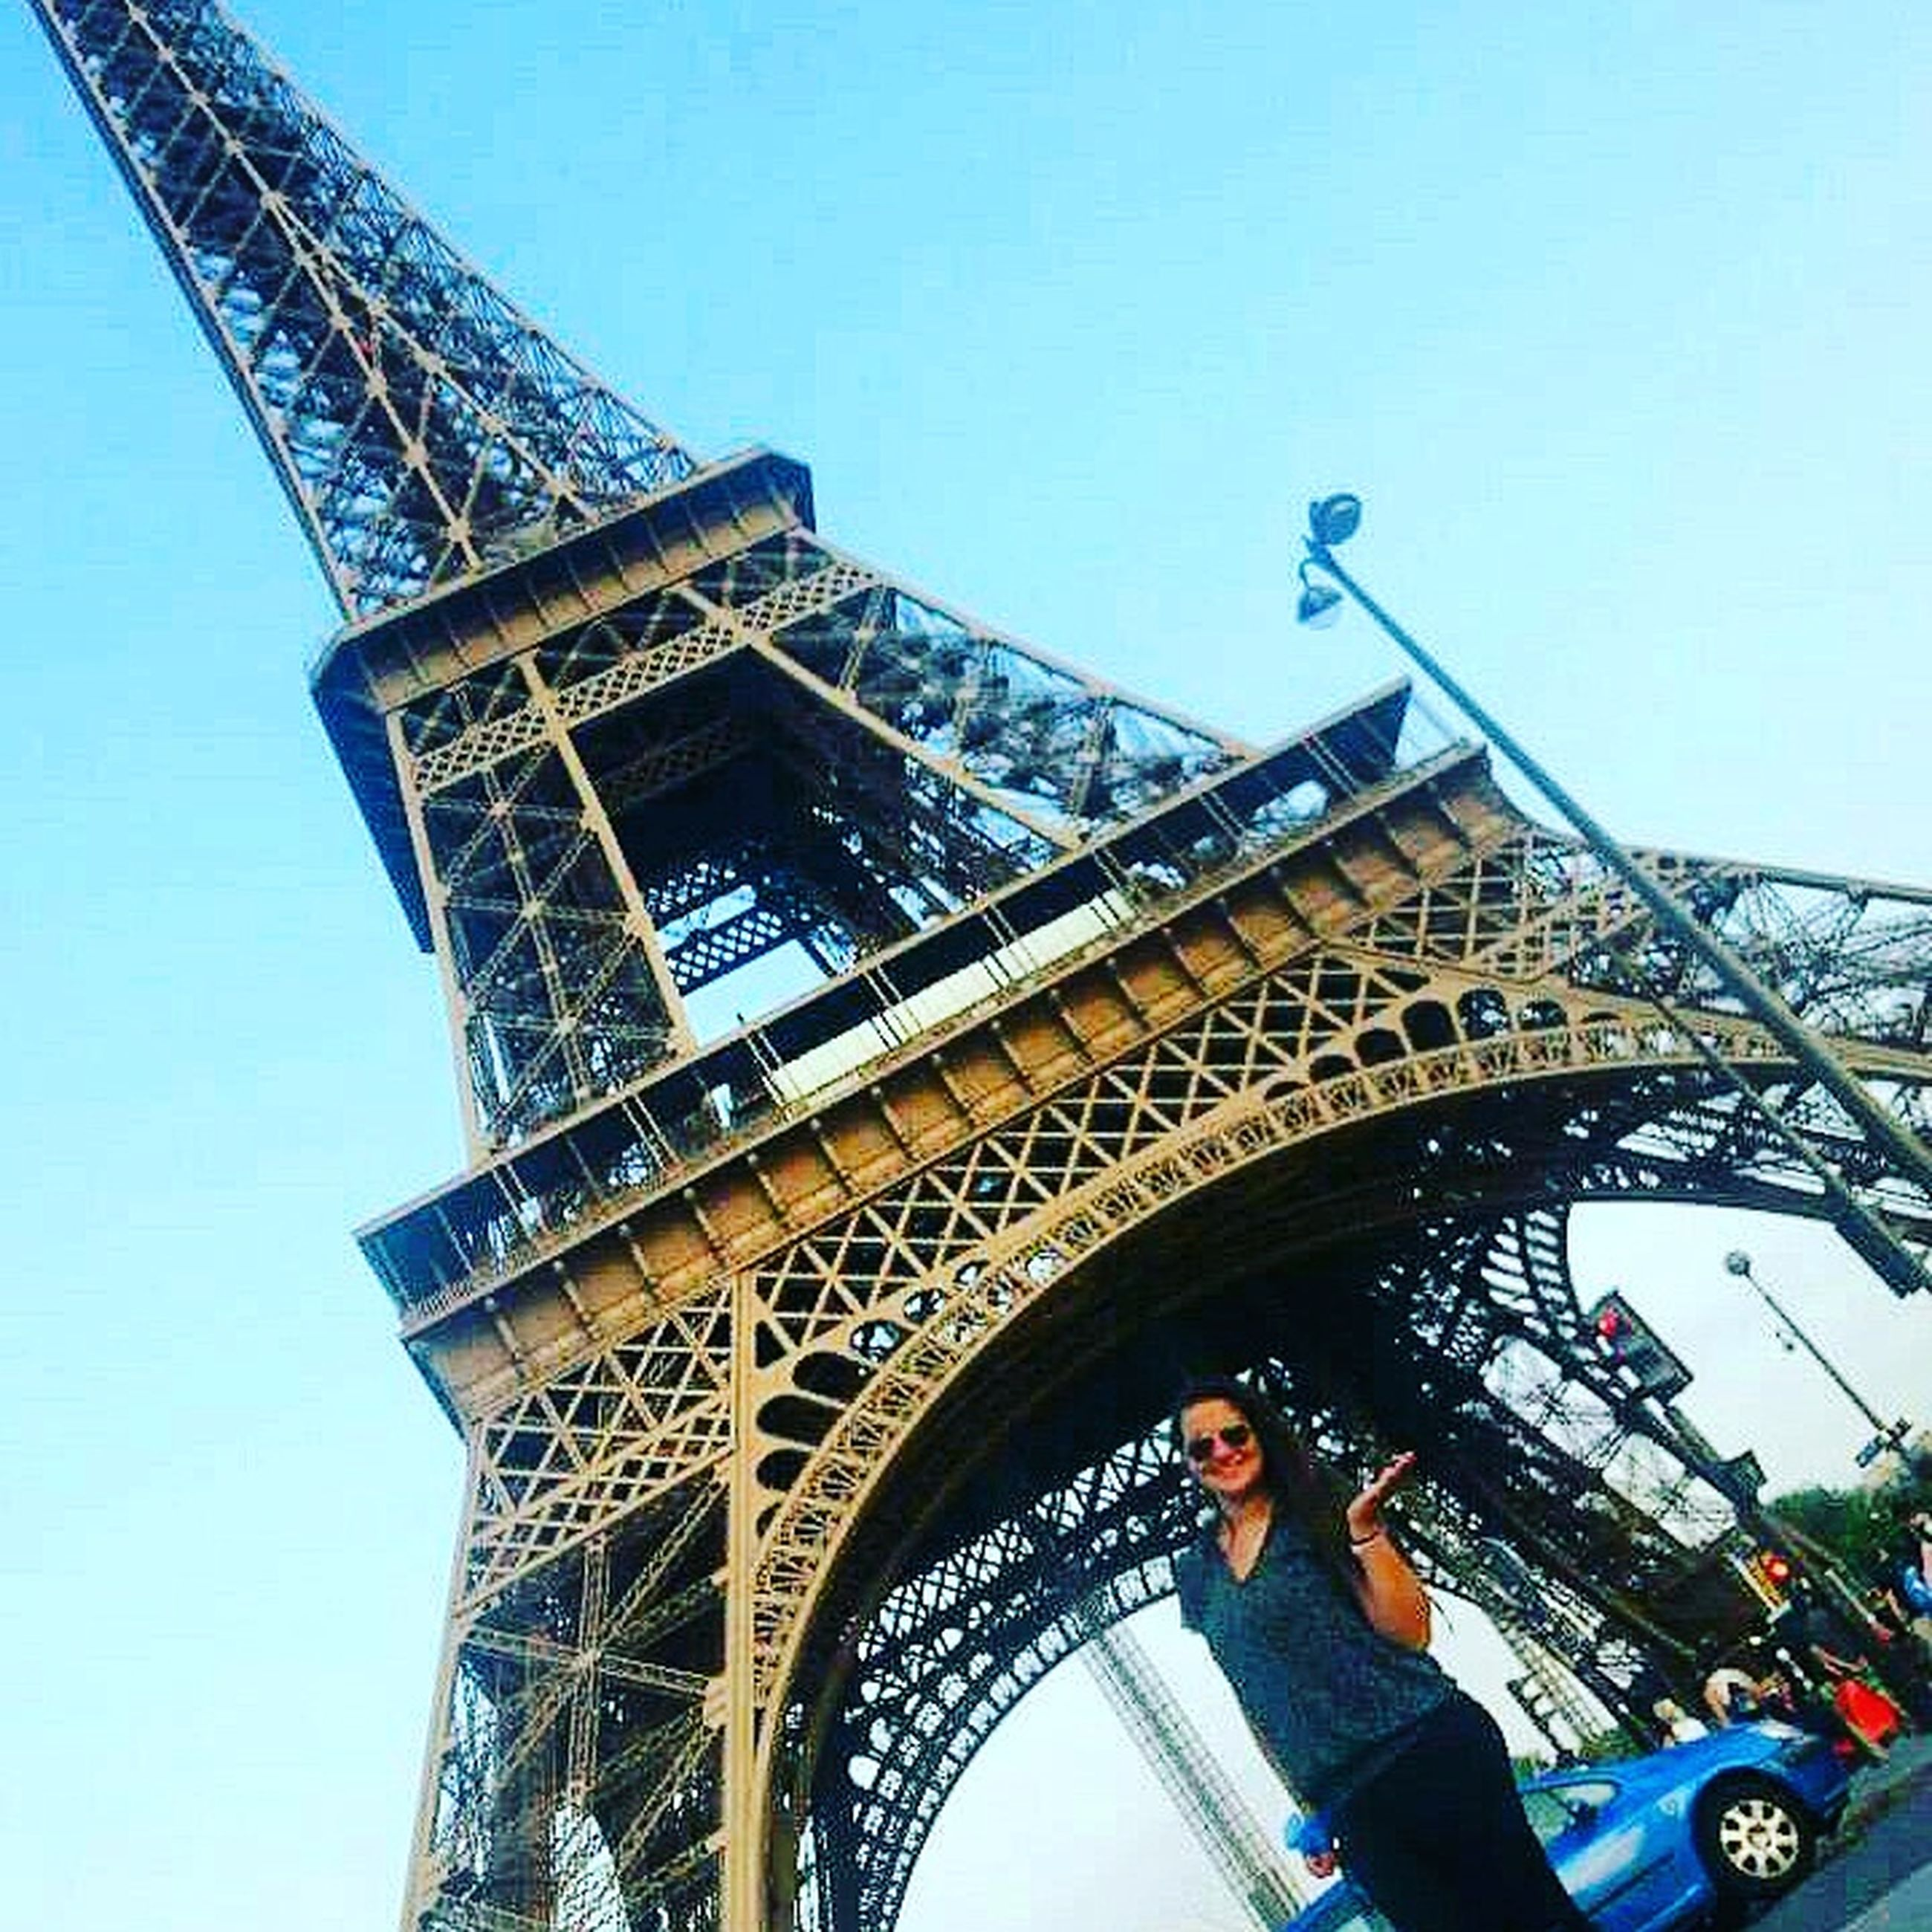 architecture, built structure, clear sky, low angle view, famous place, international landmark, capital cities, tower, travel destinations, travel, tourism, building exterior, blue, engineering, copy space, leisure activity, metal, city, eiffel tower